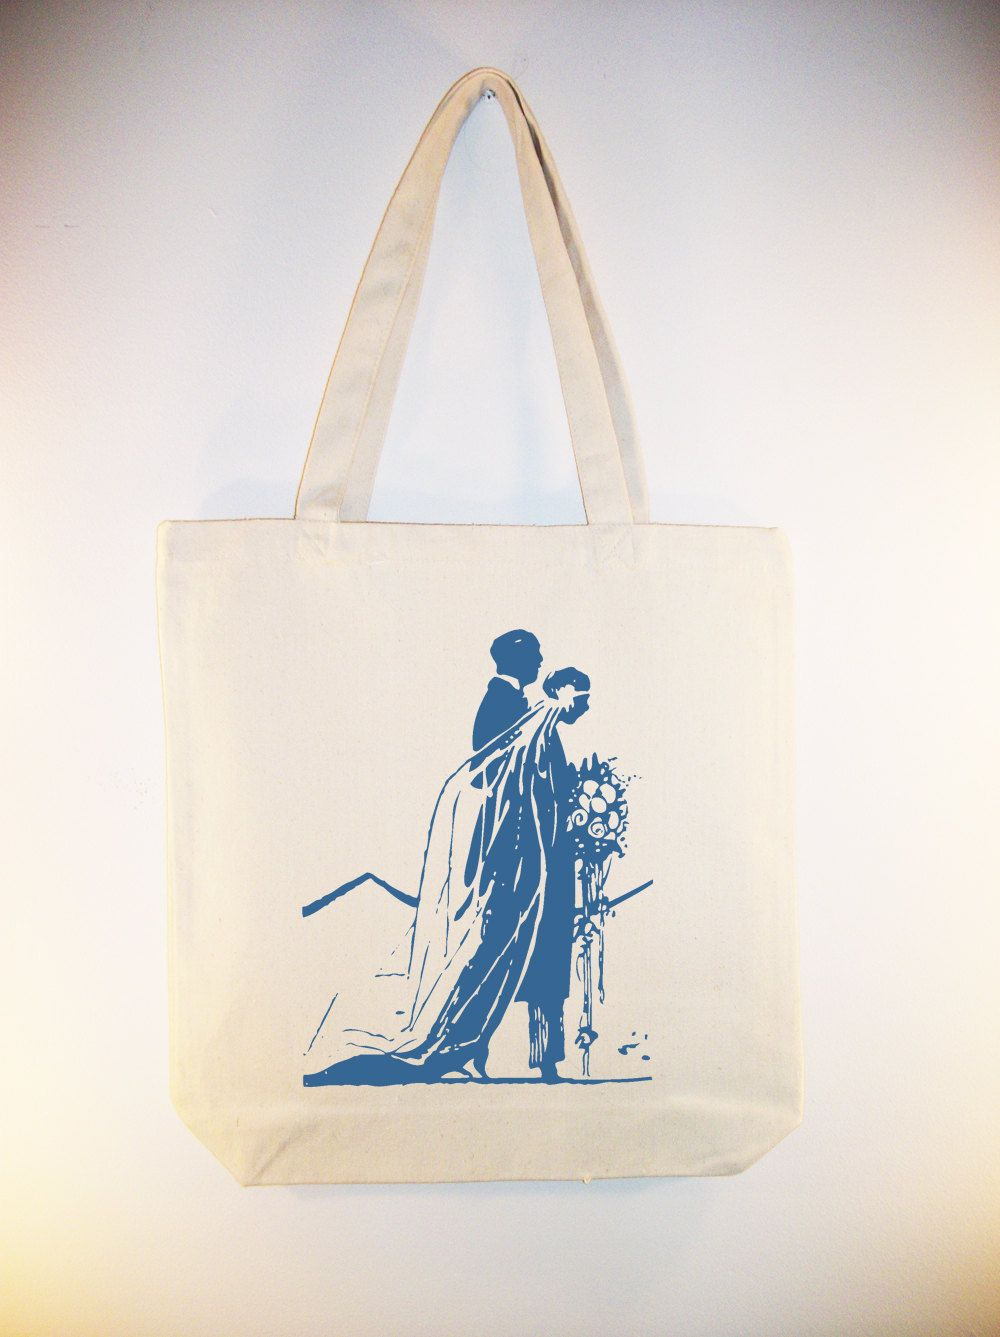 Beautiful Vintage Bride and Groom 15x15 Canvas Tote -  Larger zipper top tote and personalization available - IMAGE IN ANY COLOR